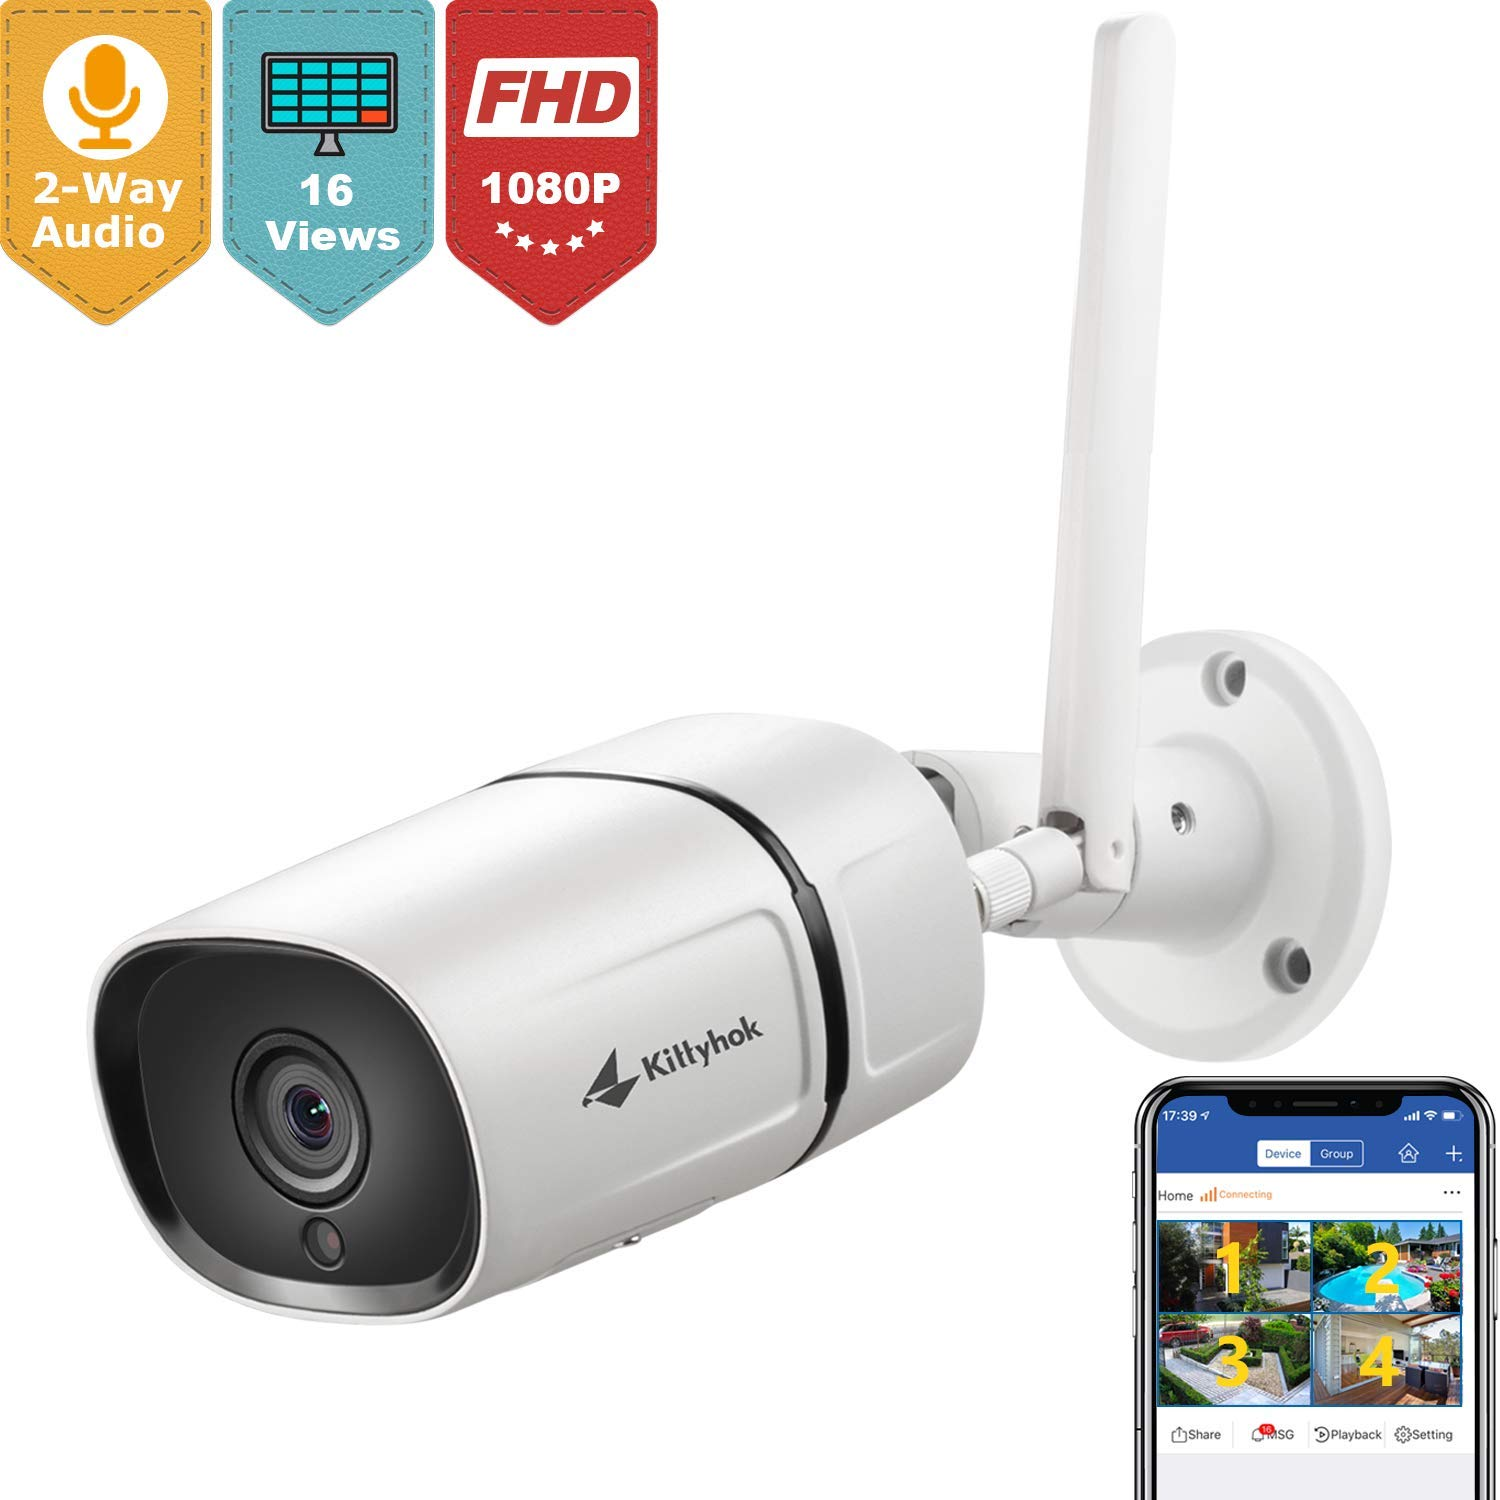 Kittyhok Wireless Security Camera Outdoor, 1080P Full HD 2.4Ghz Wire or WiFi Surveillance Cameras with Two-Way Audio/ Motion Detection/ Night Vision/ IP65, Works with iOS/ Android/ Mac/ Windows